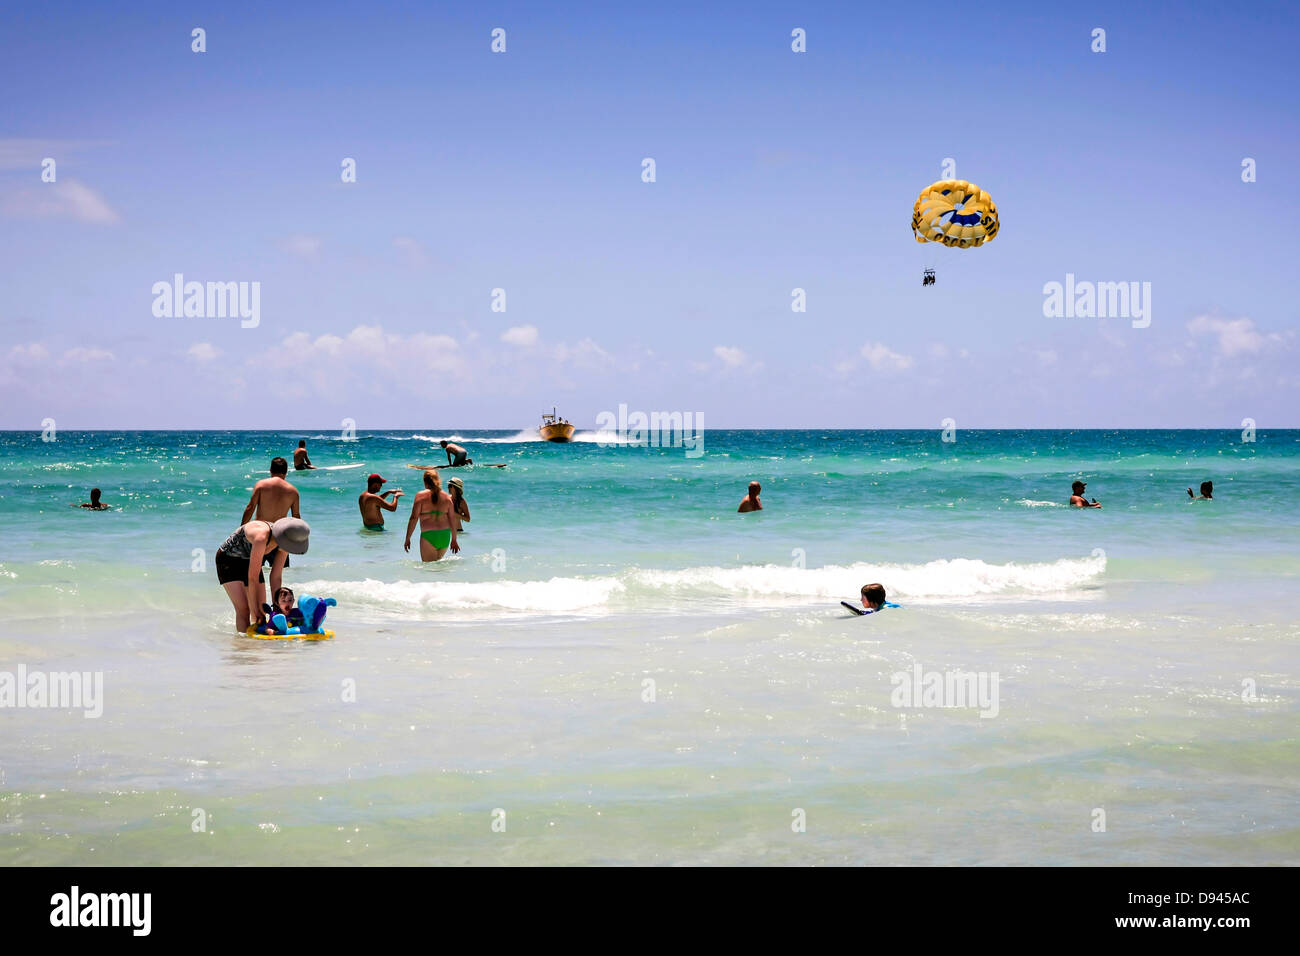 People having fun in the waters of the Gulf of Mexico at Siesta Key FL Stock Photo